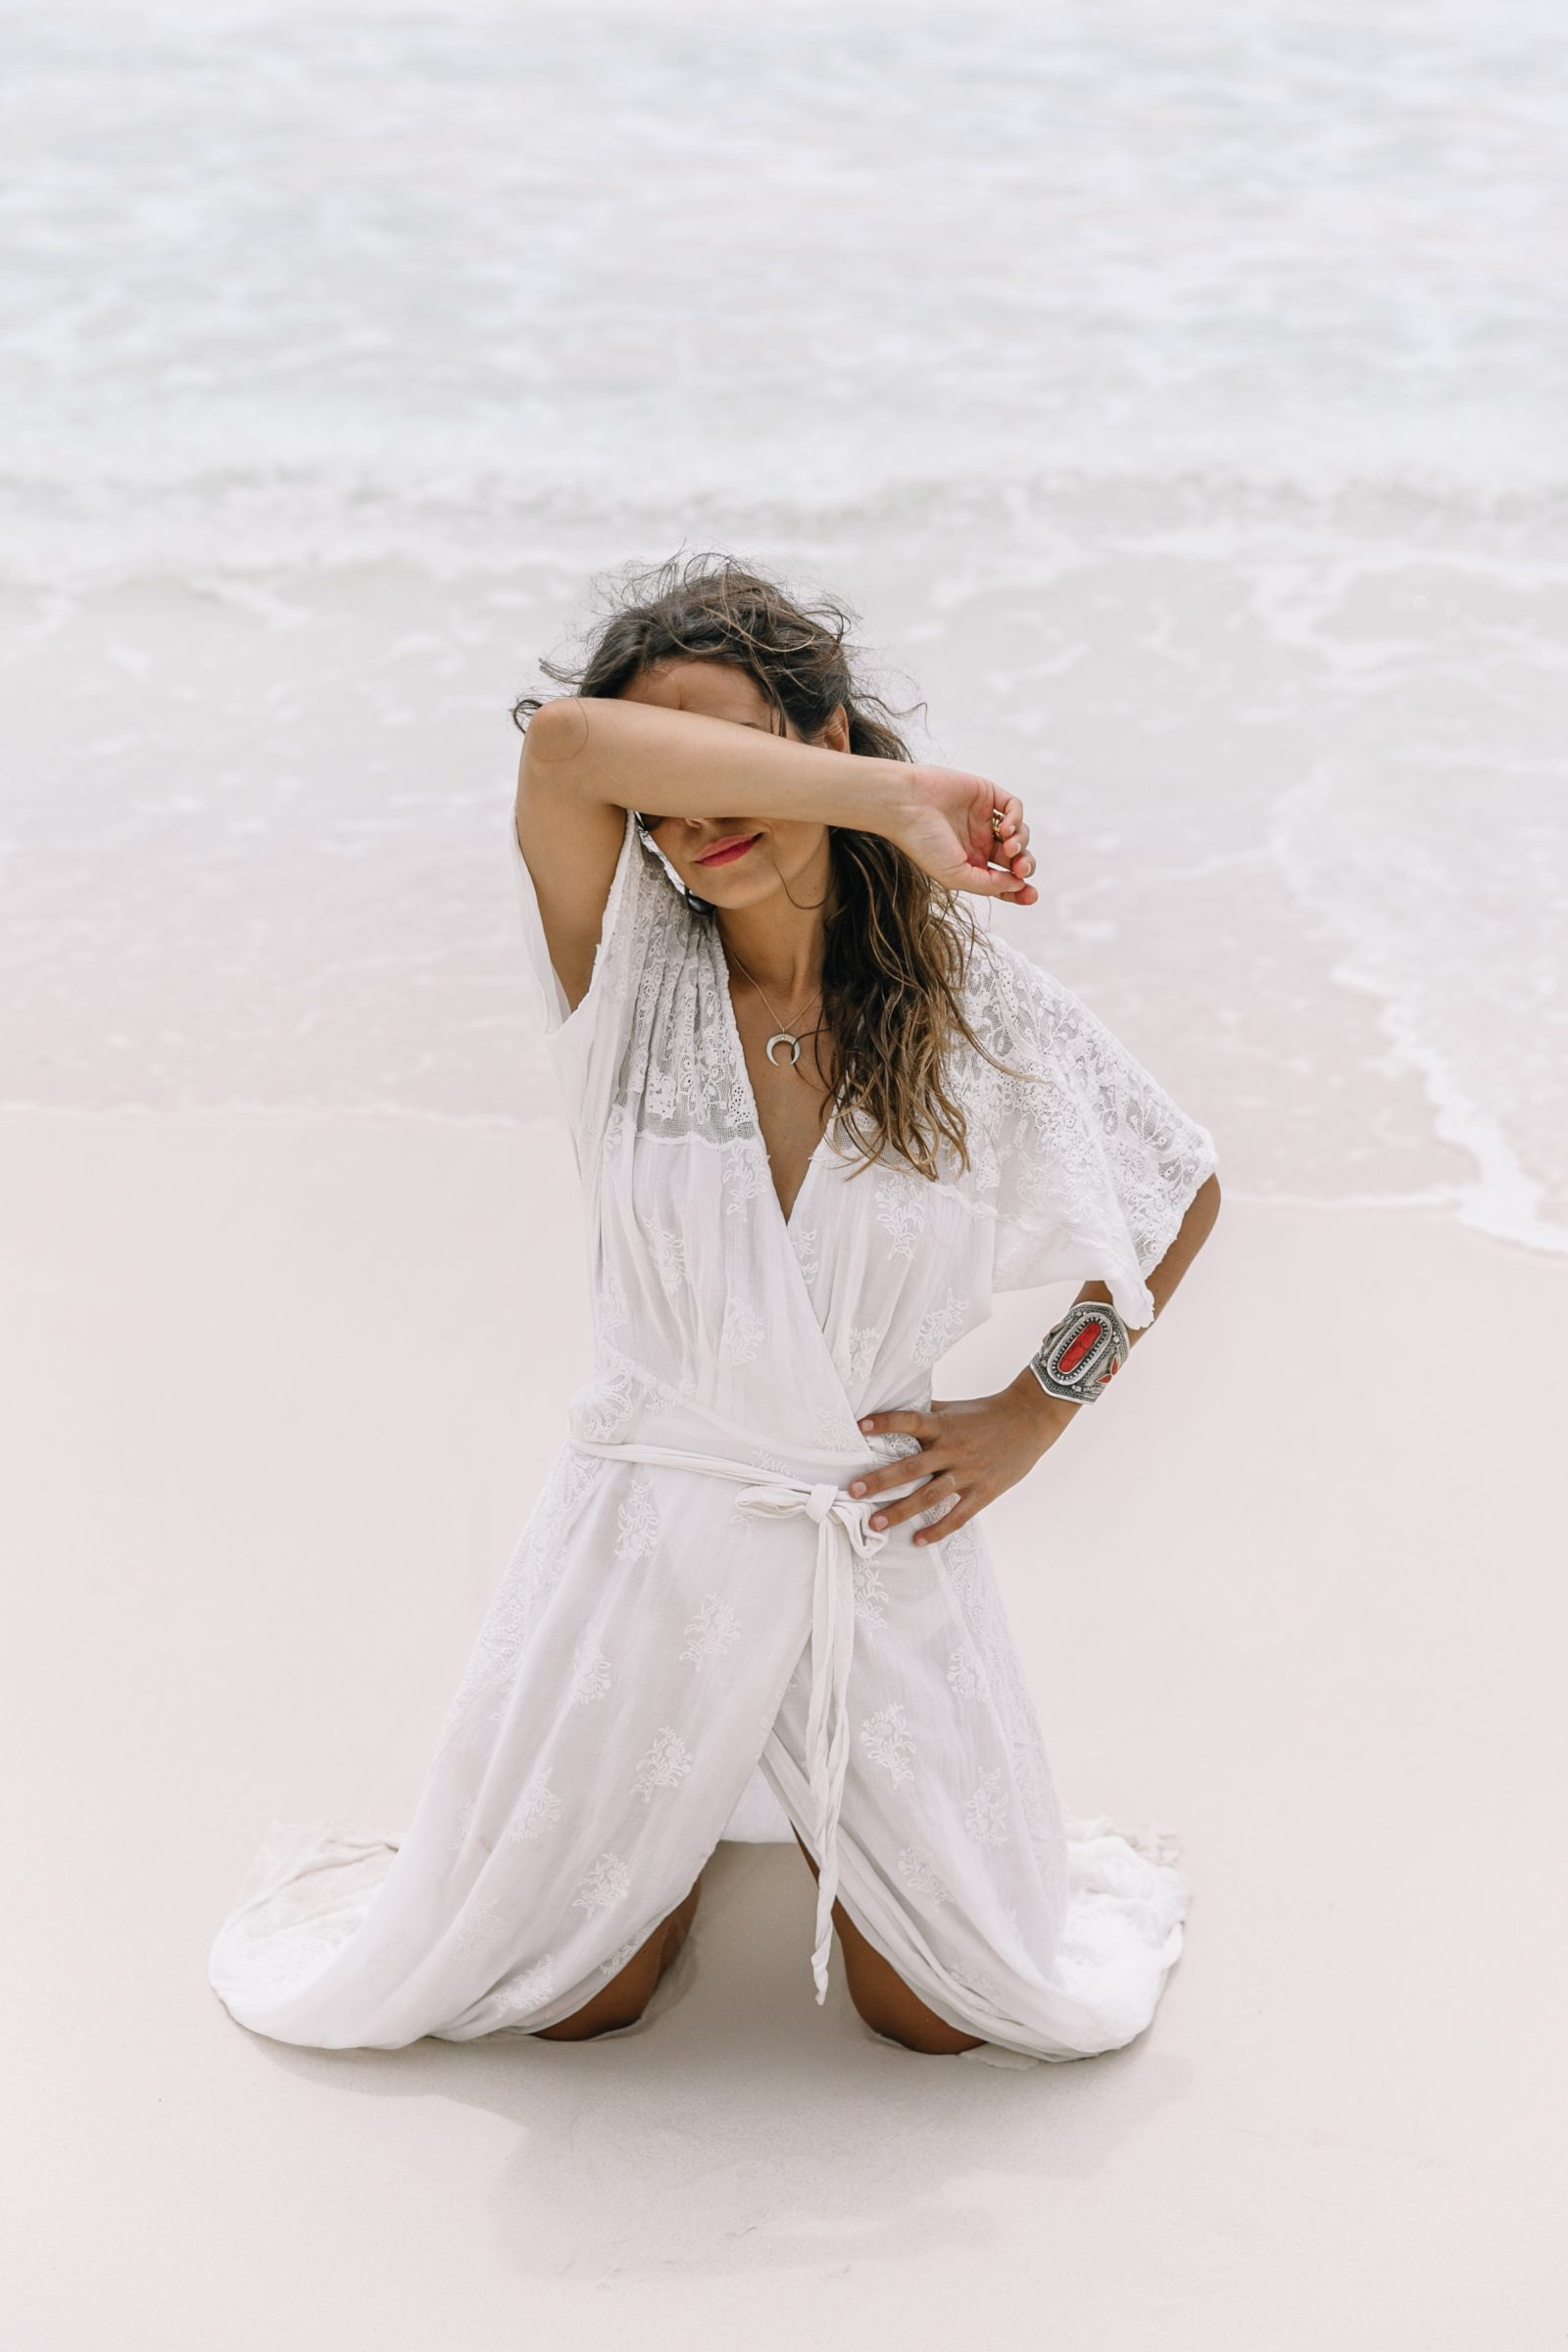 white_long_dress-boho_style-tulum_mexico-beach-floral_crown-outfit-collage_vintage-76